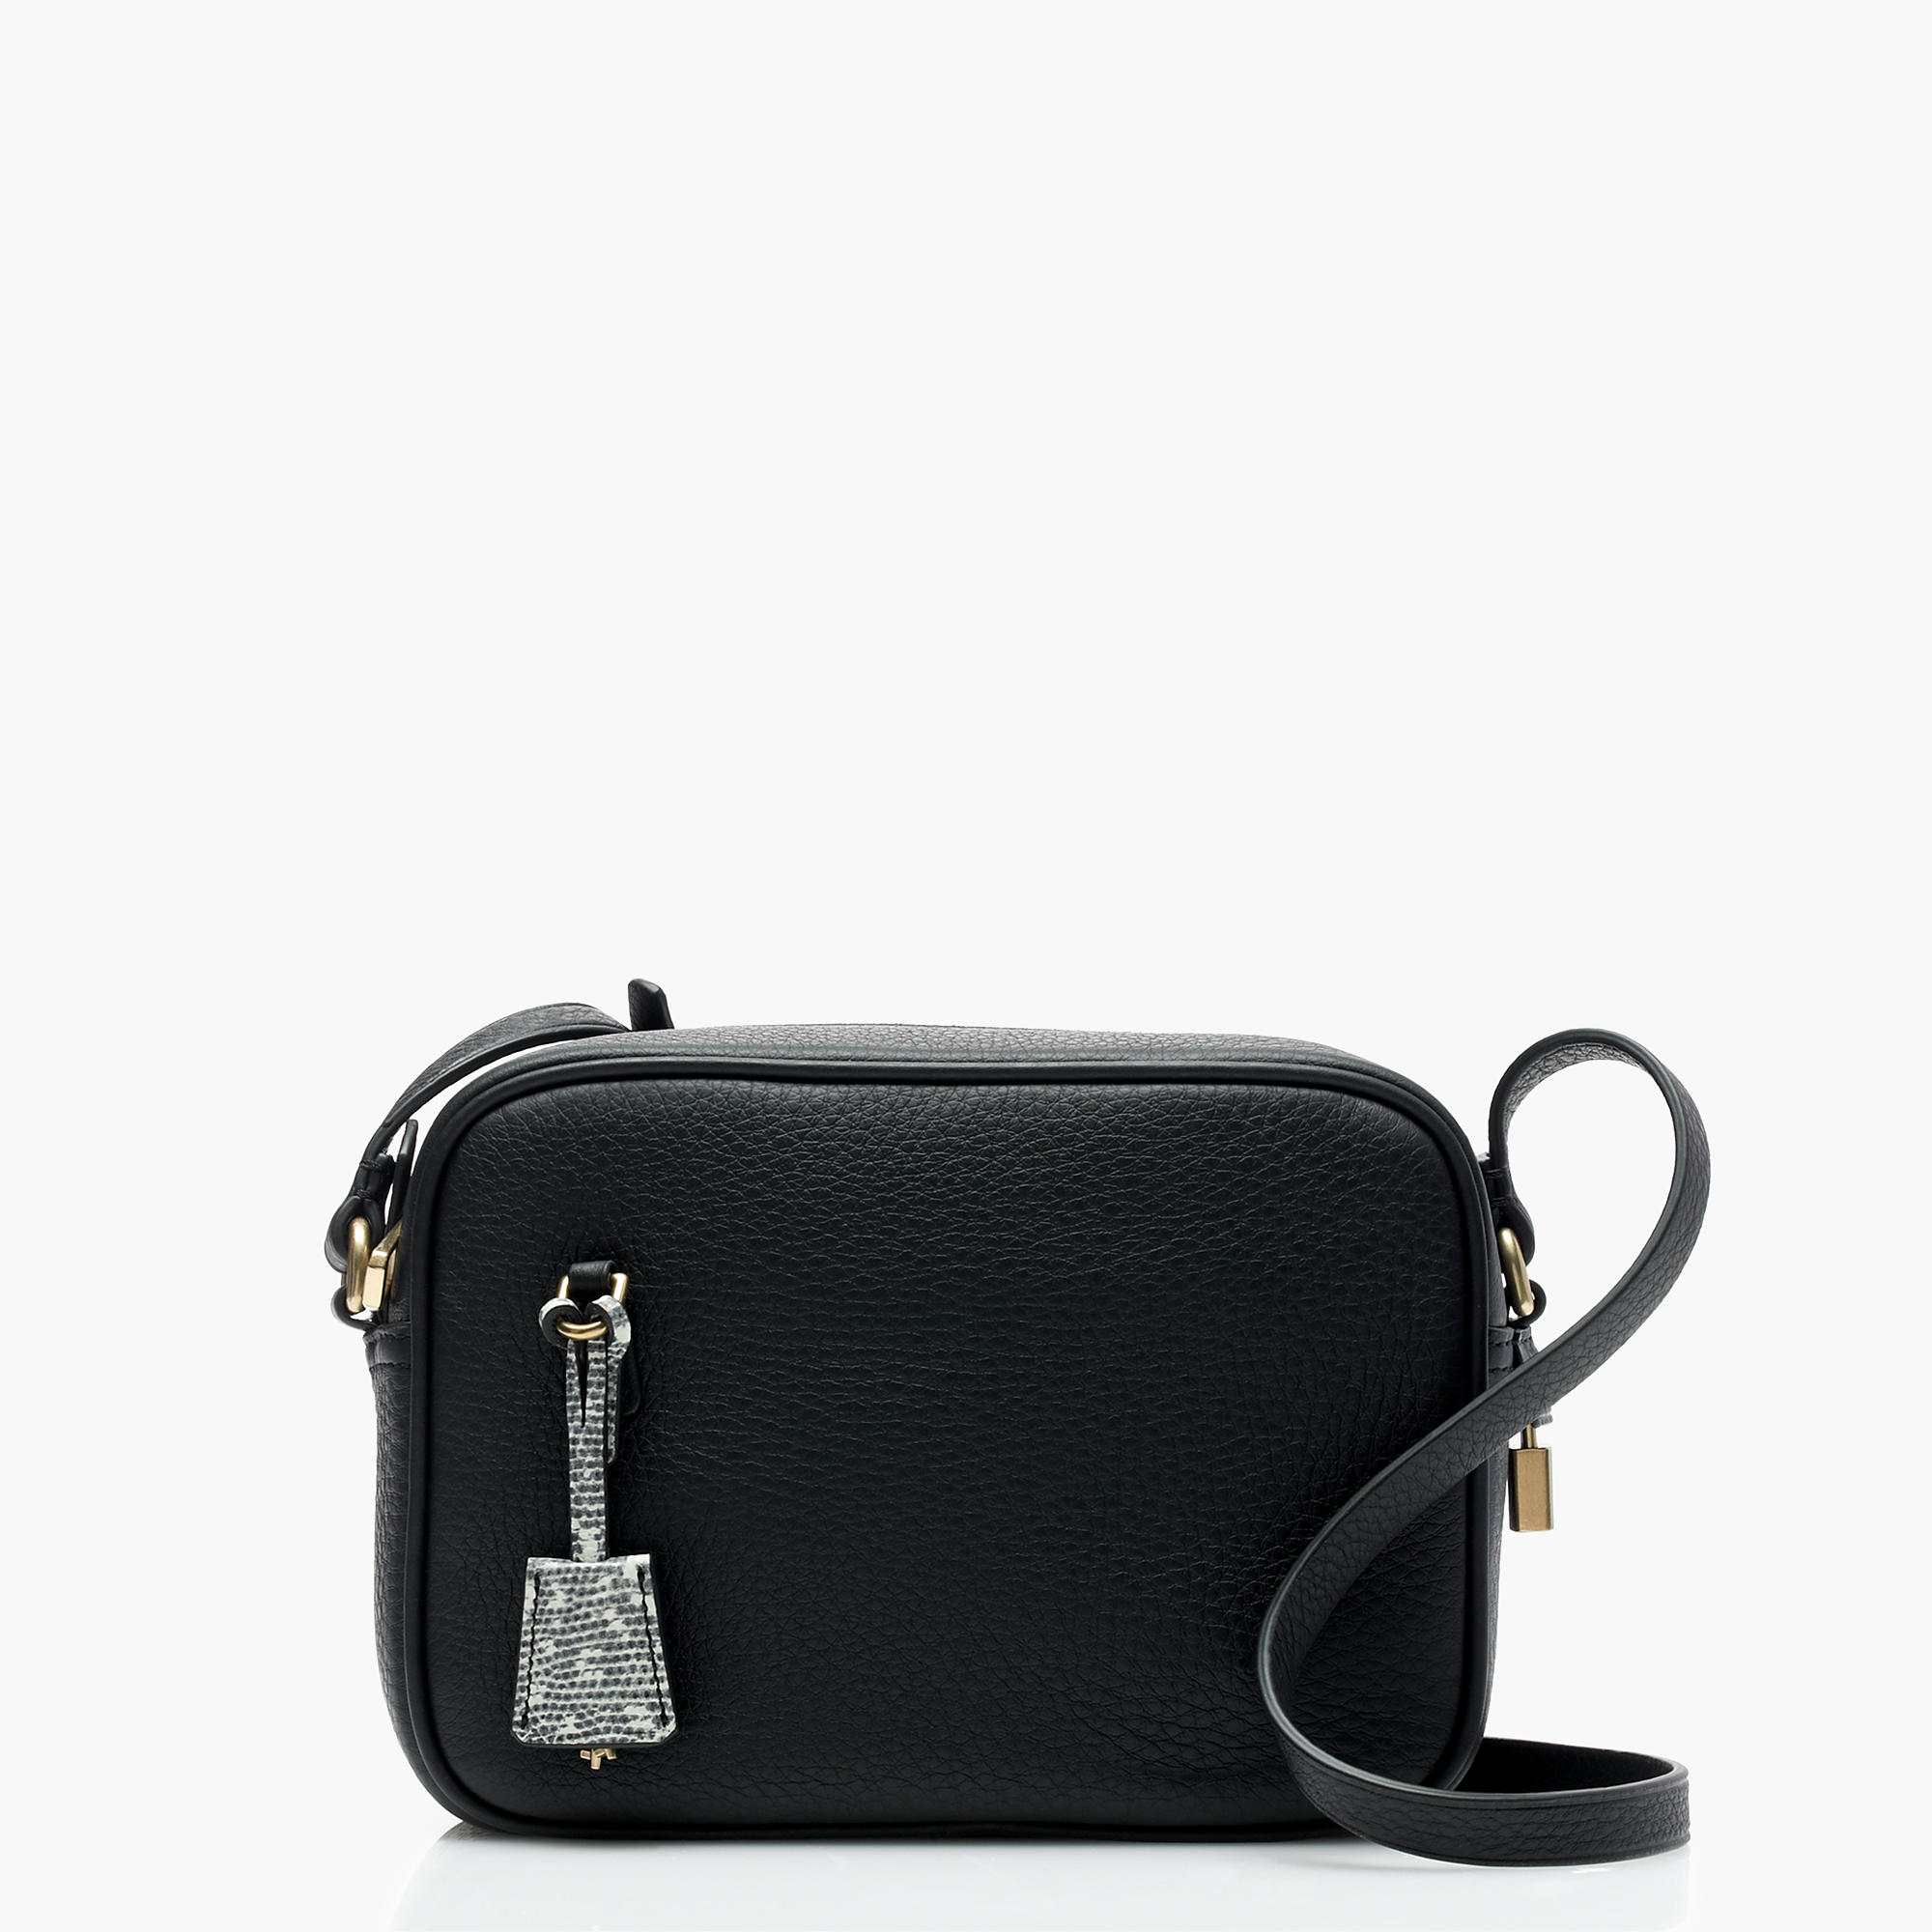 J.Crew Signet Bags in Italian Leather, Black